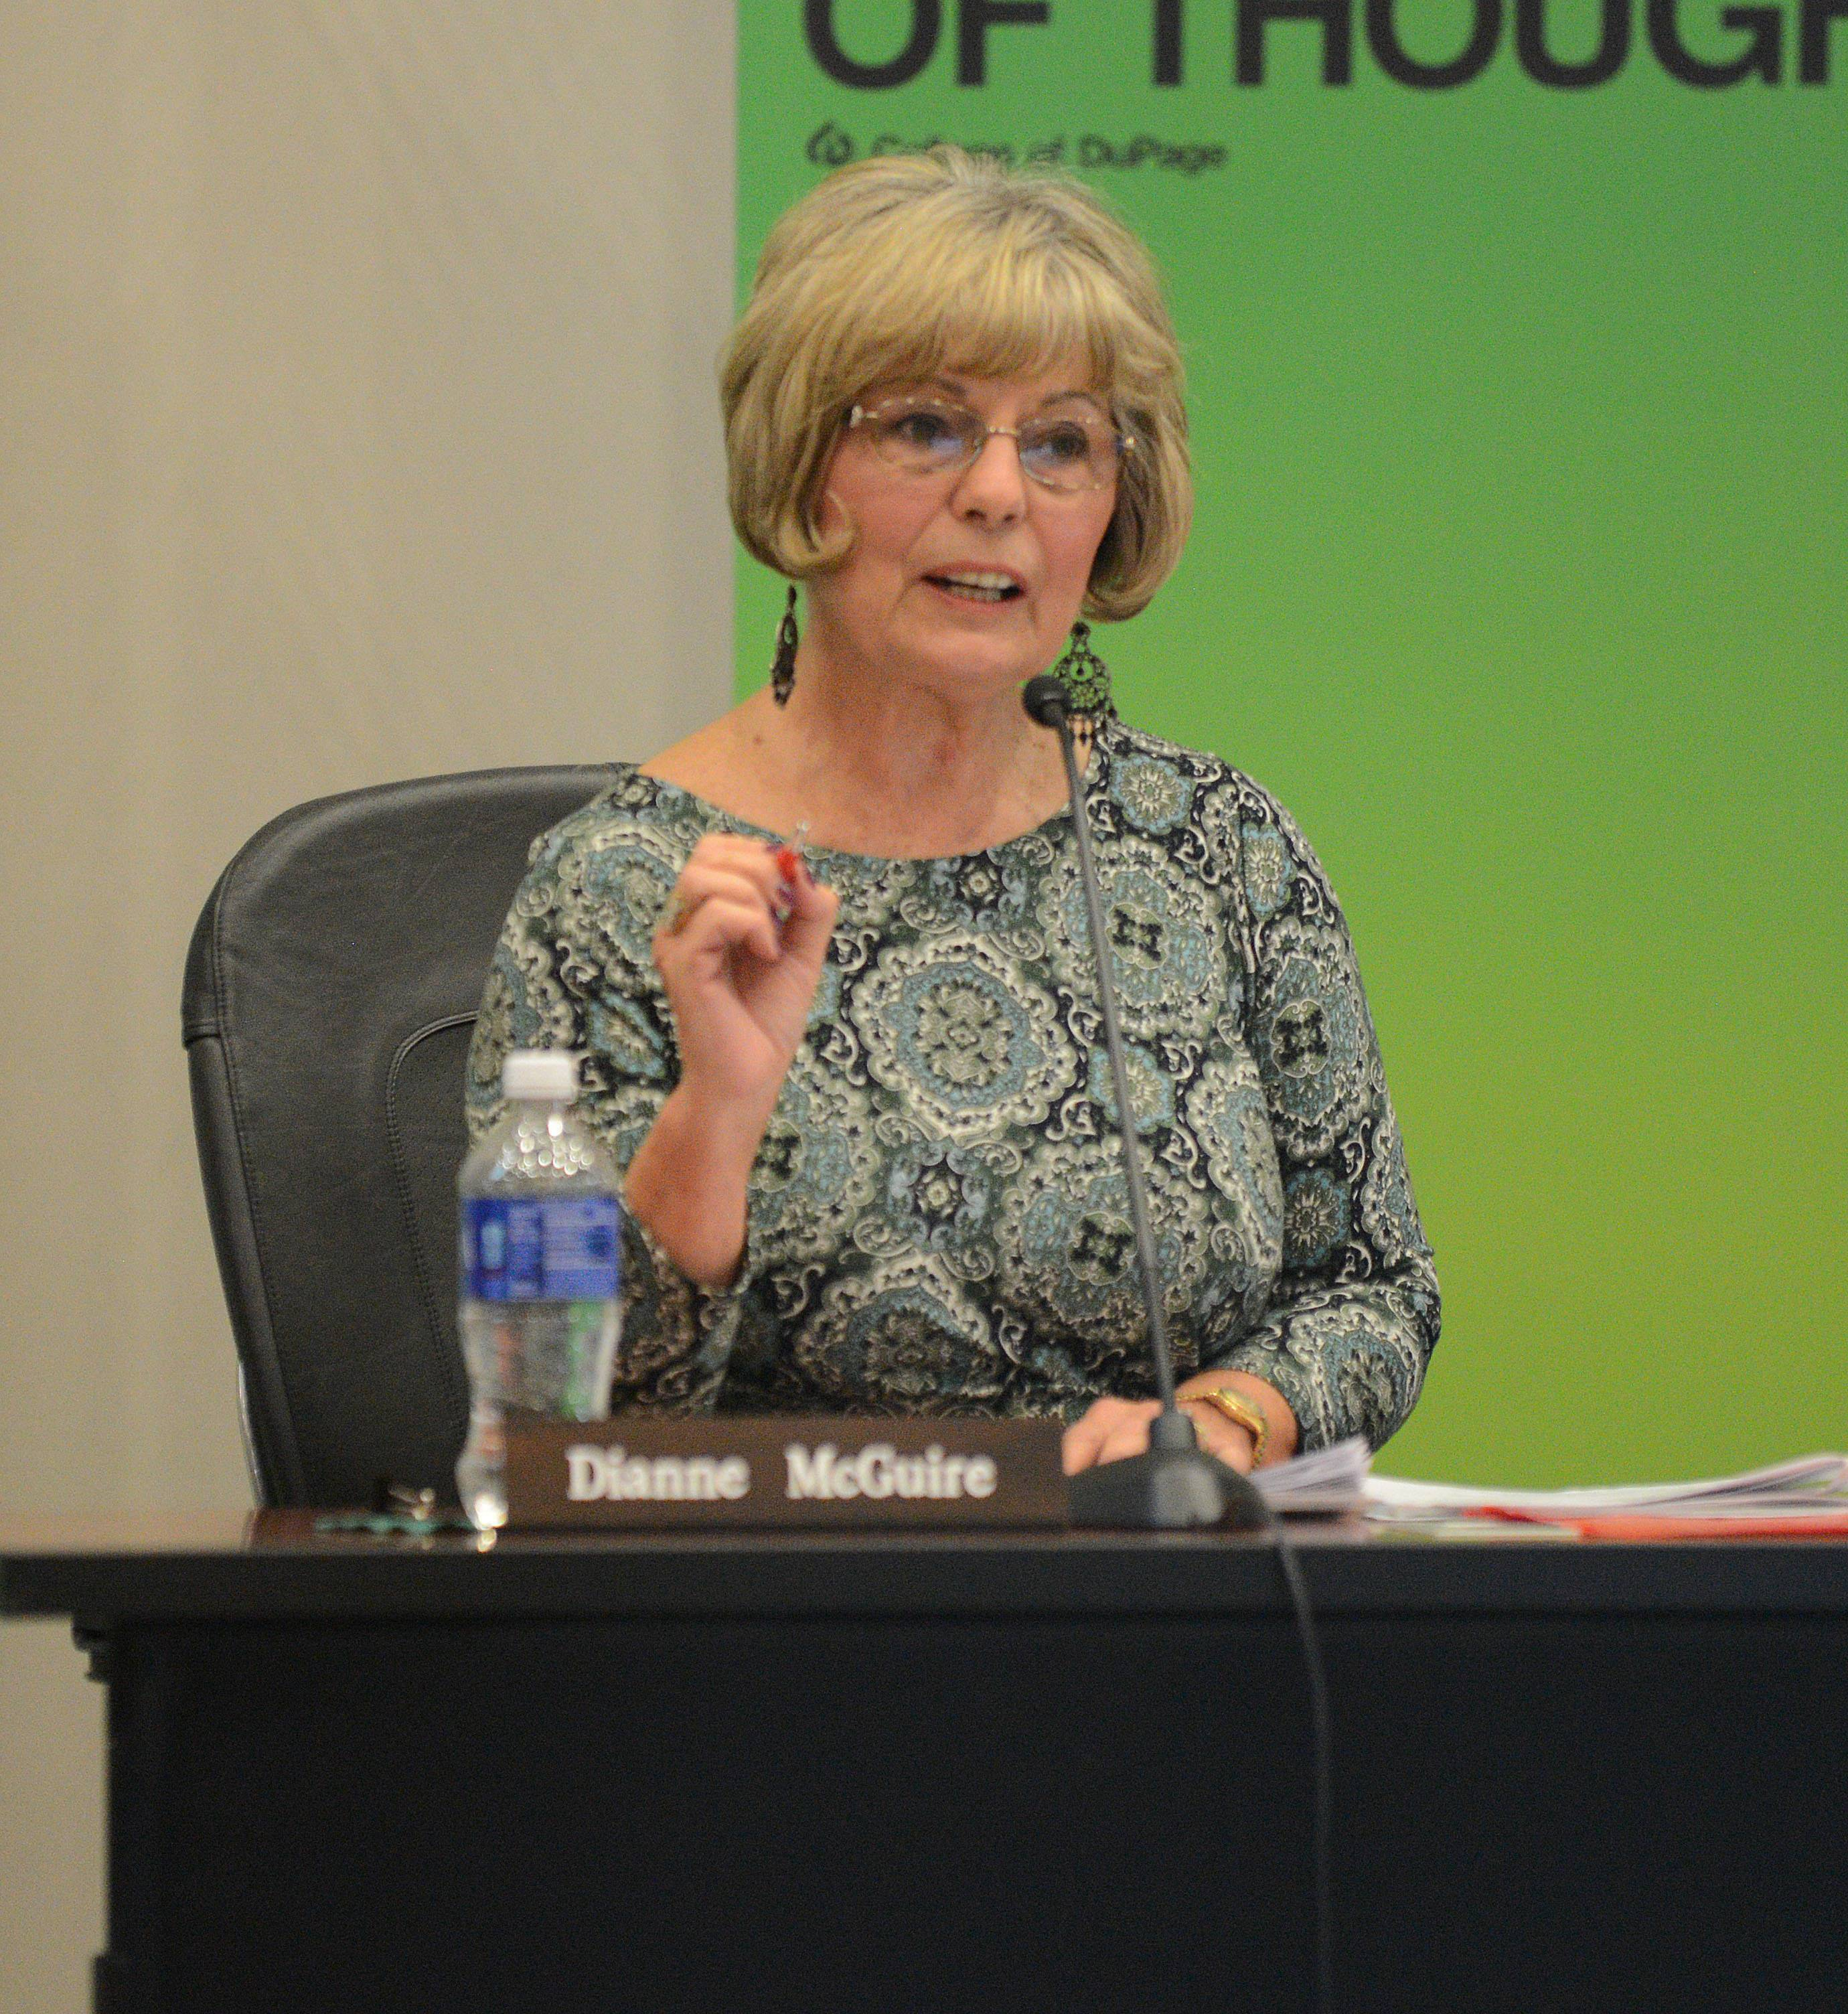 Trustee Dianne McGuire cast the only vote opposing Tuesday night's resolution to fire Robert Breuder. She said the college had no legal basis to terminate Breuder.